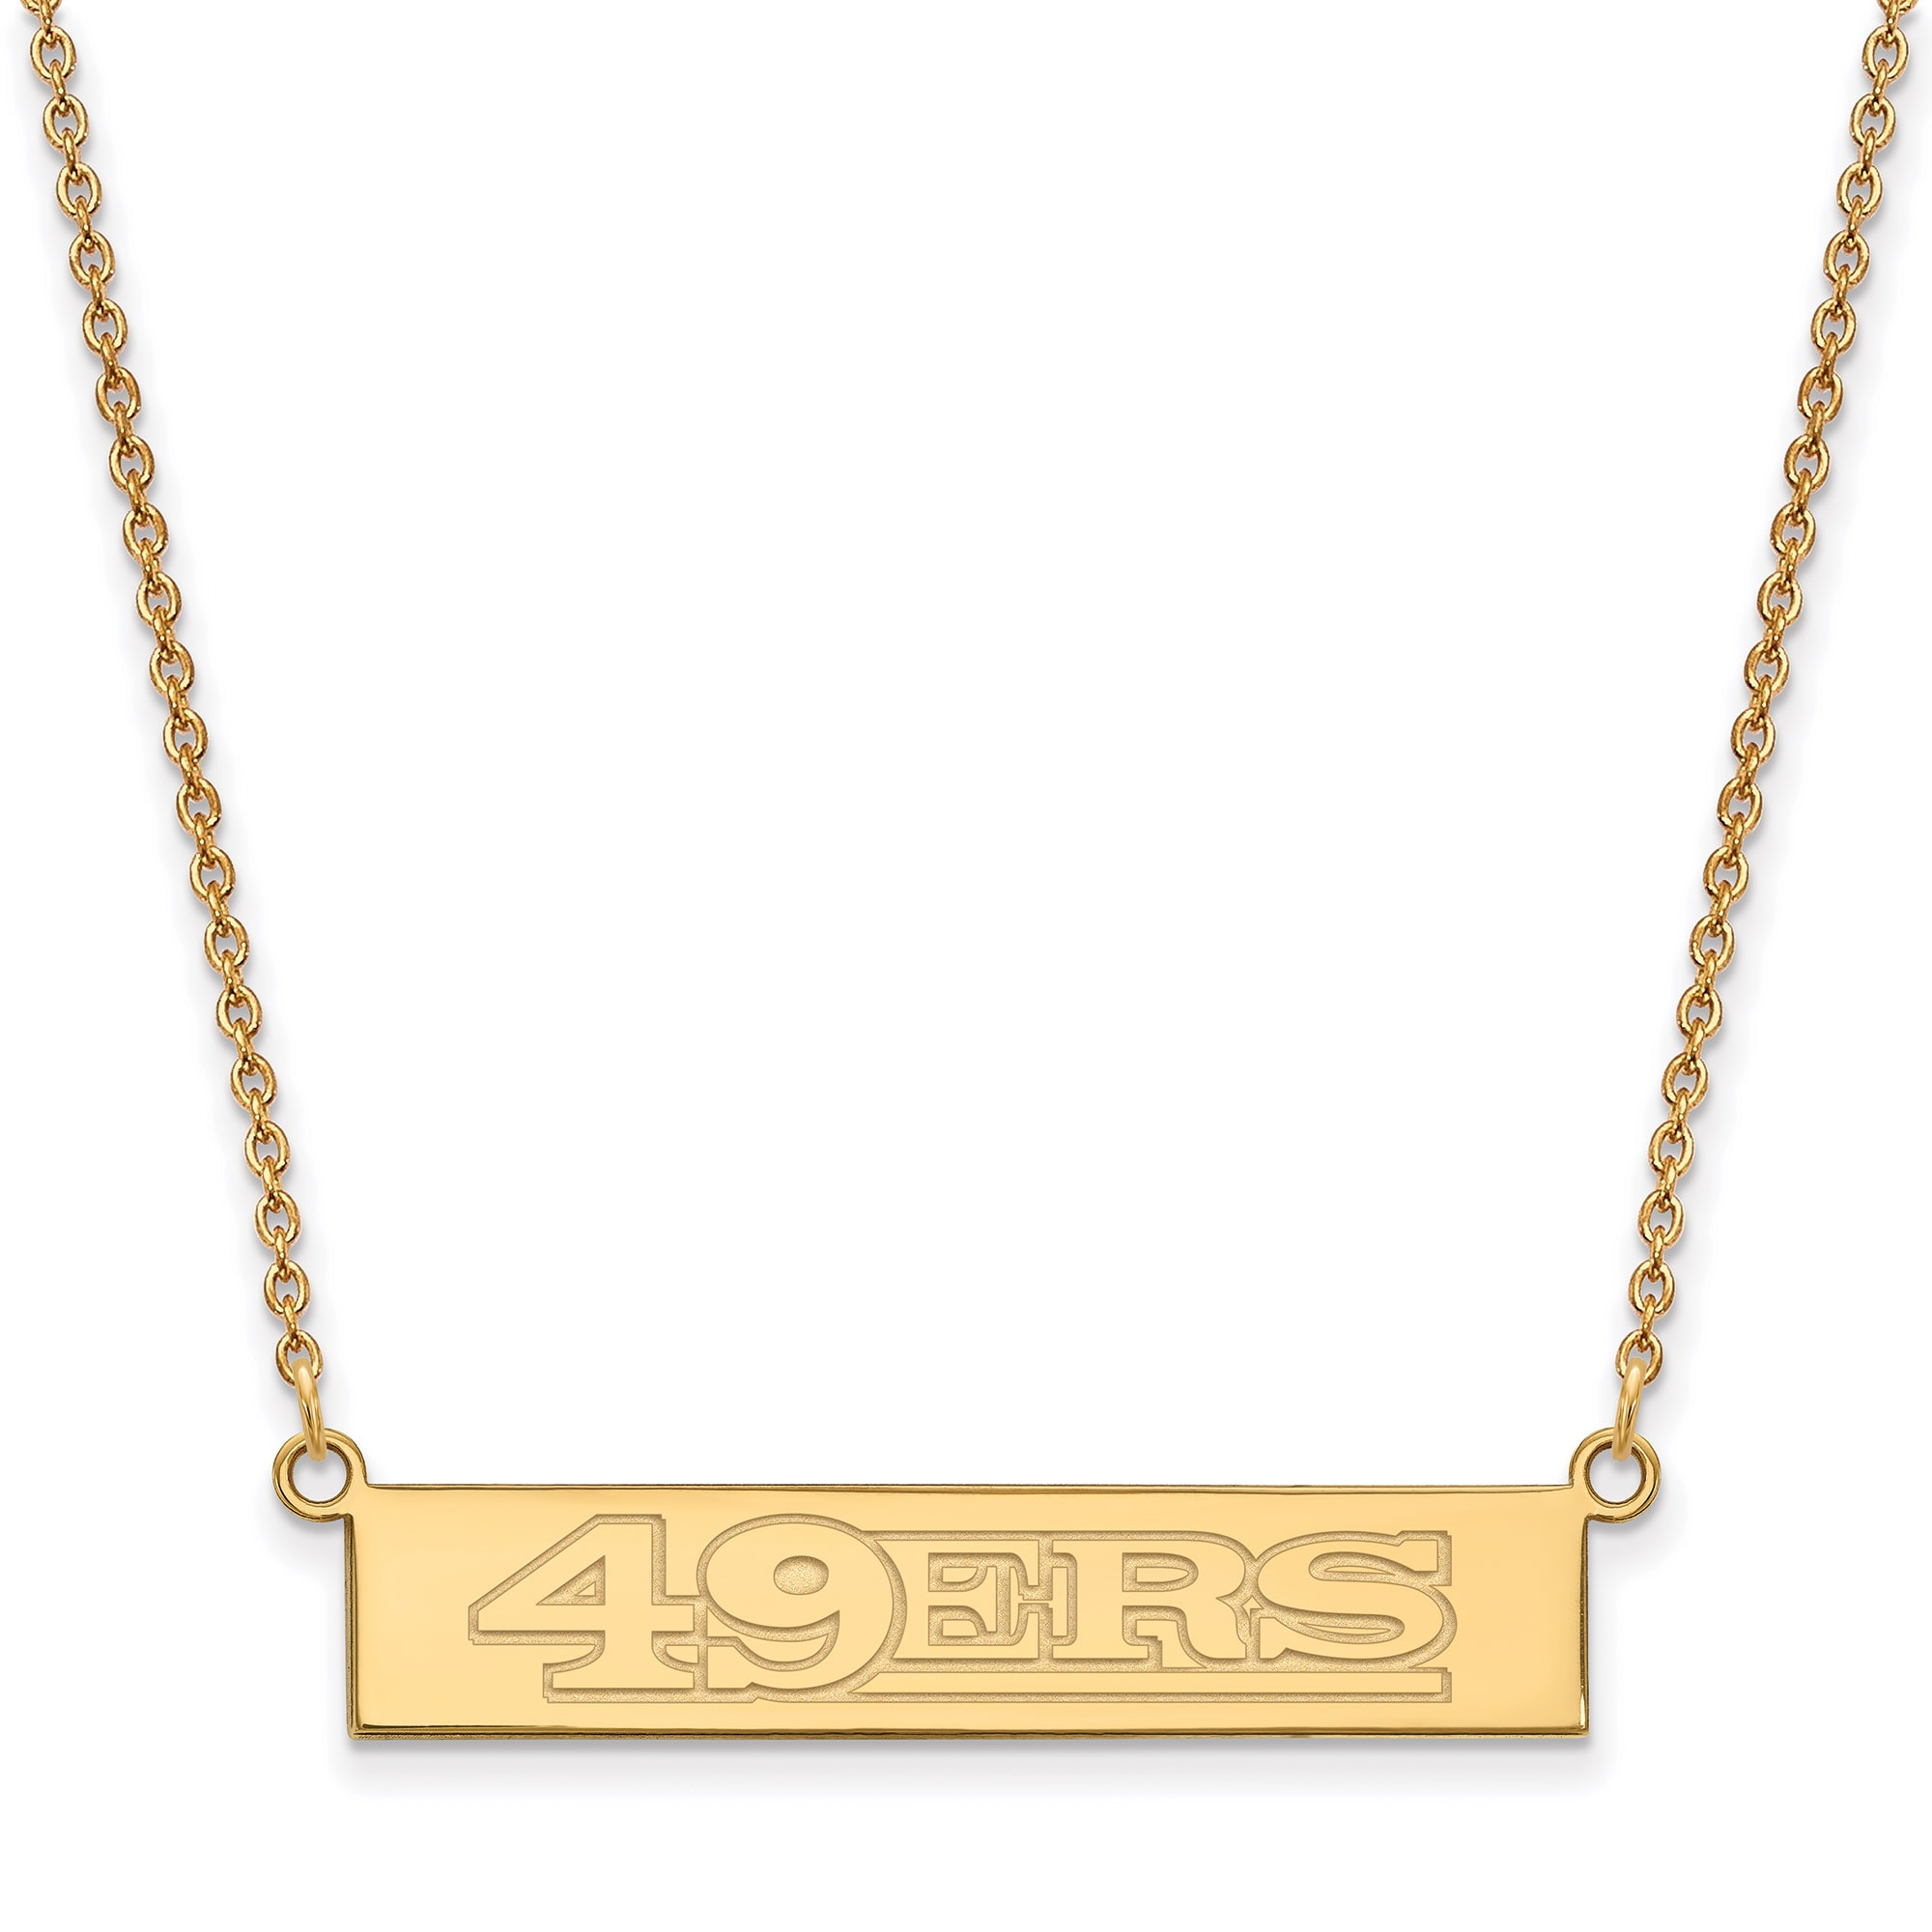 San Francisco 49ers Gold-Plated Bar Necklace